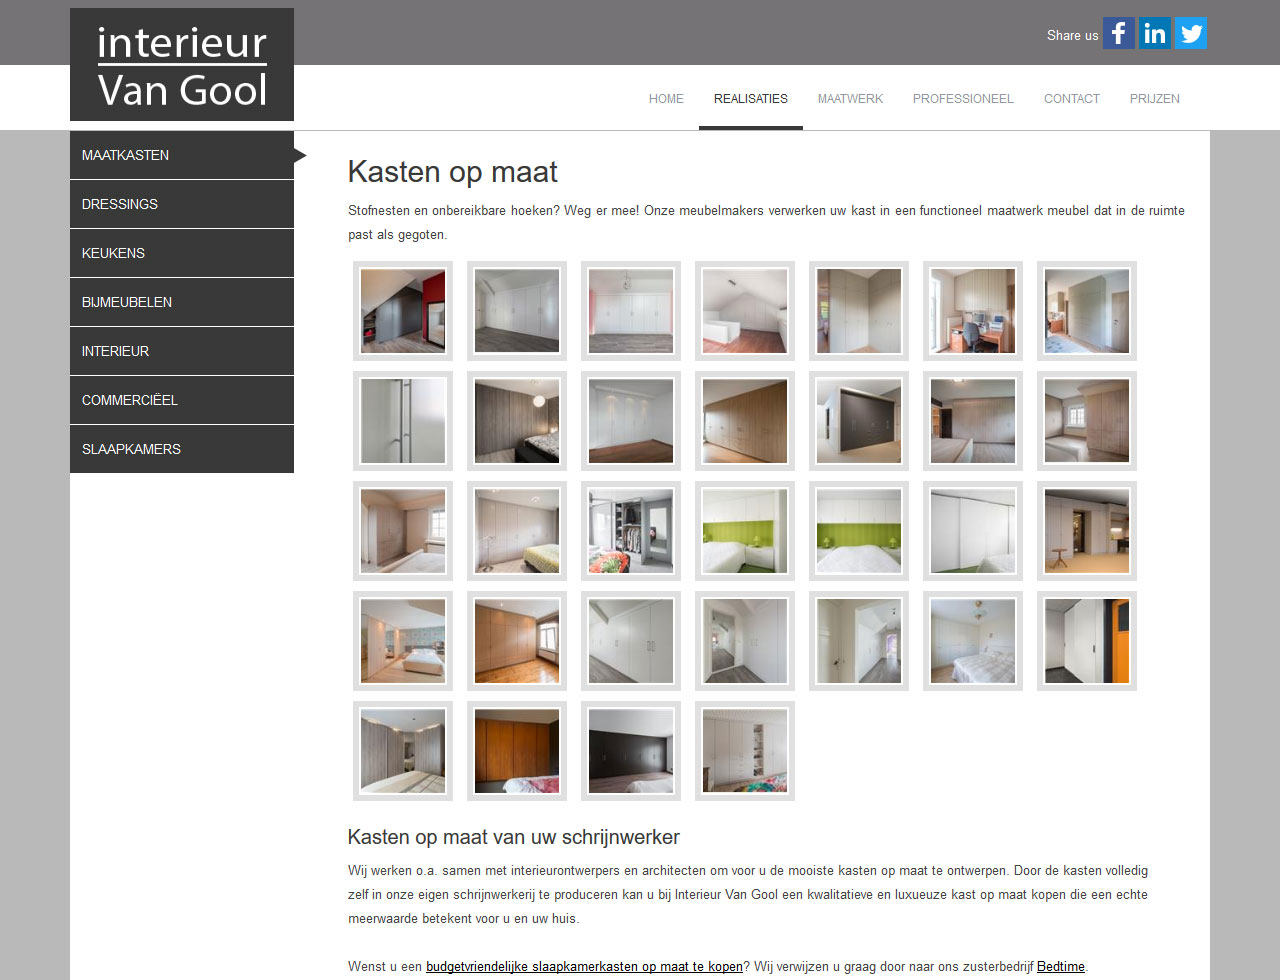 Interieur Van Gool Koen Michielsen Webdesign Essen